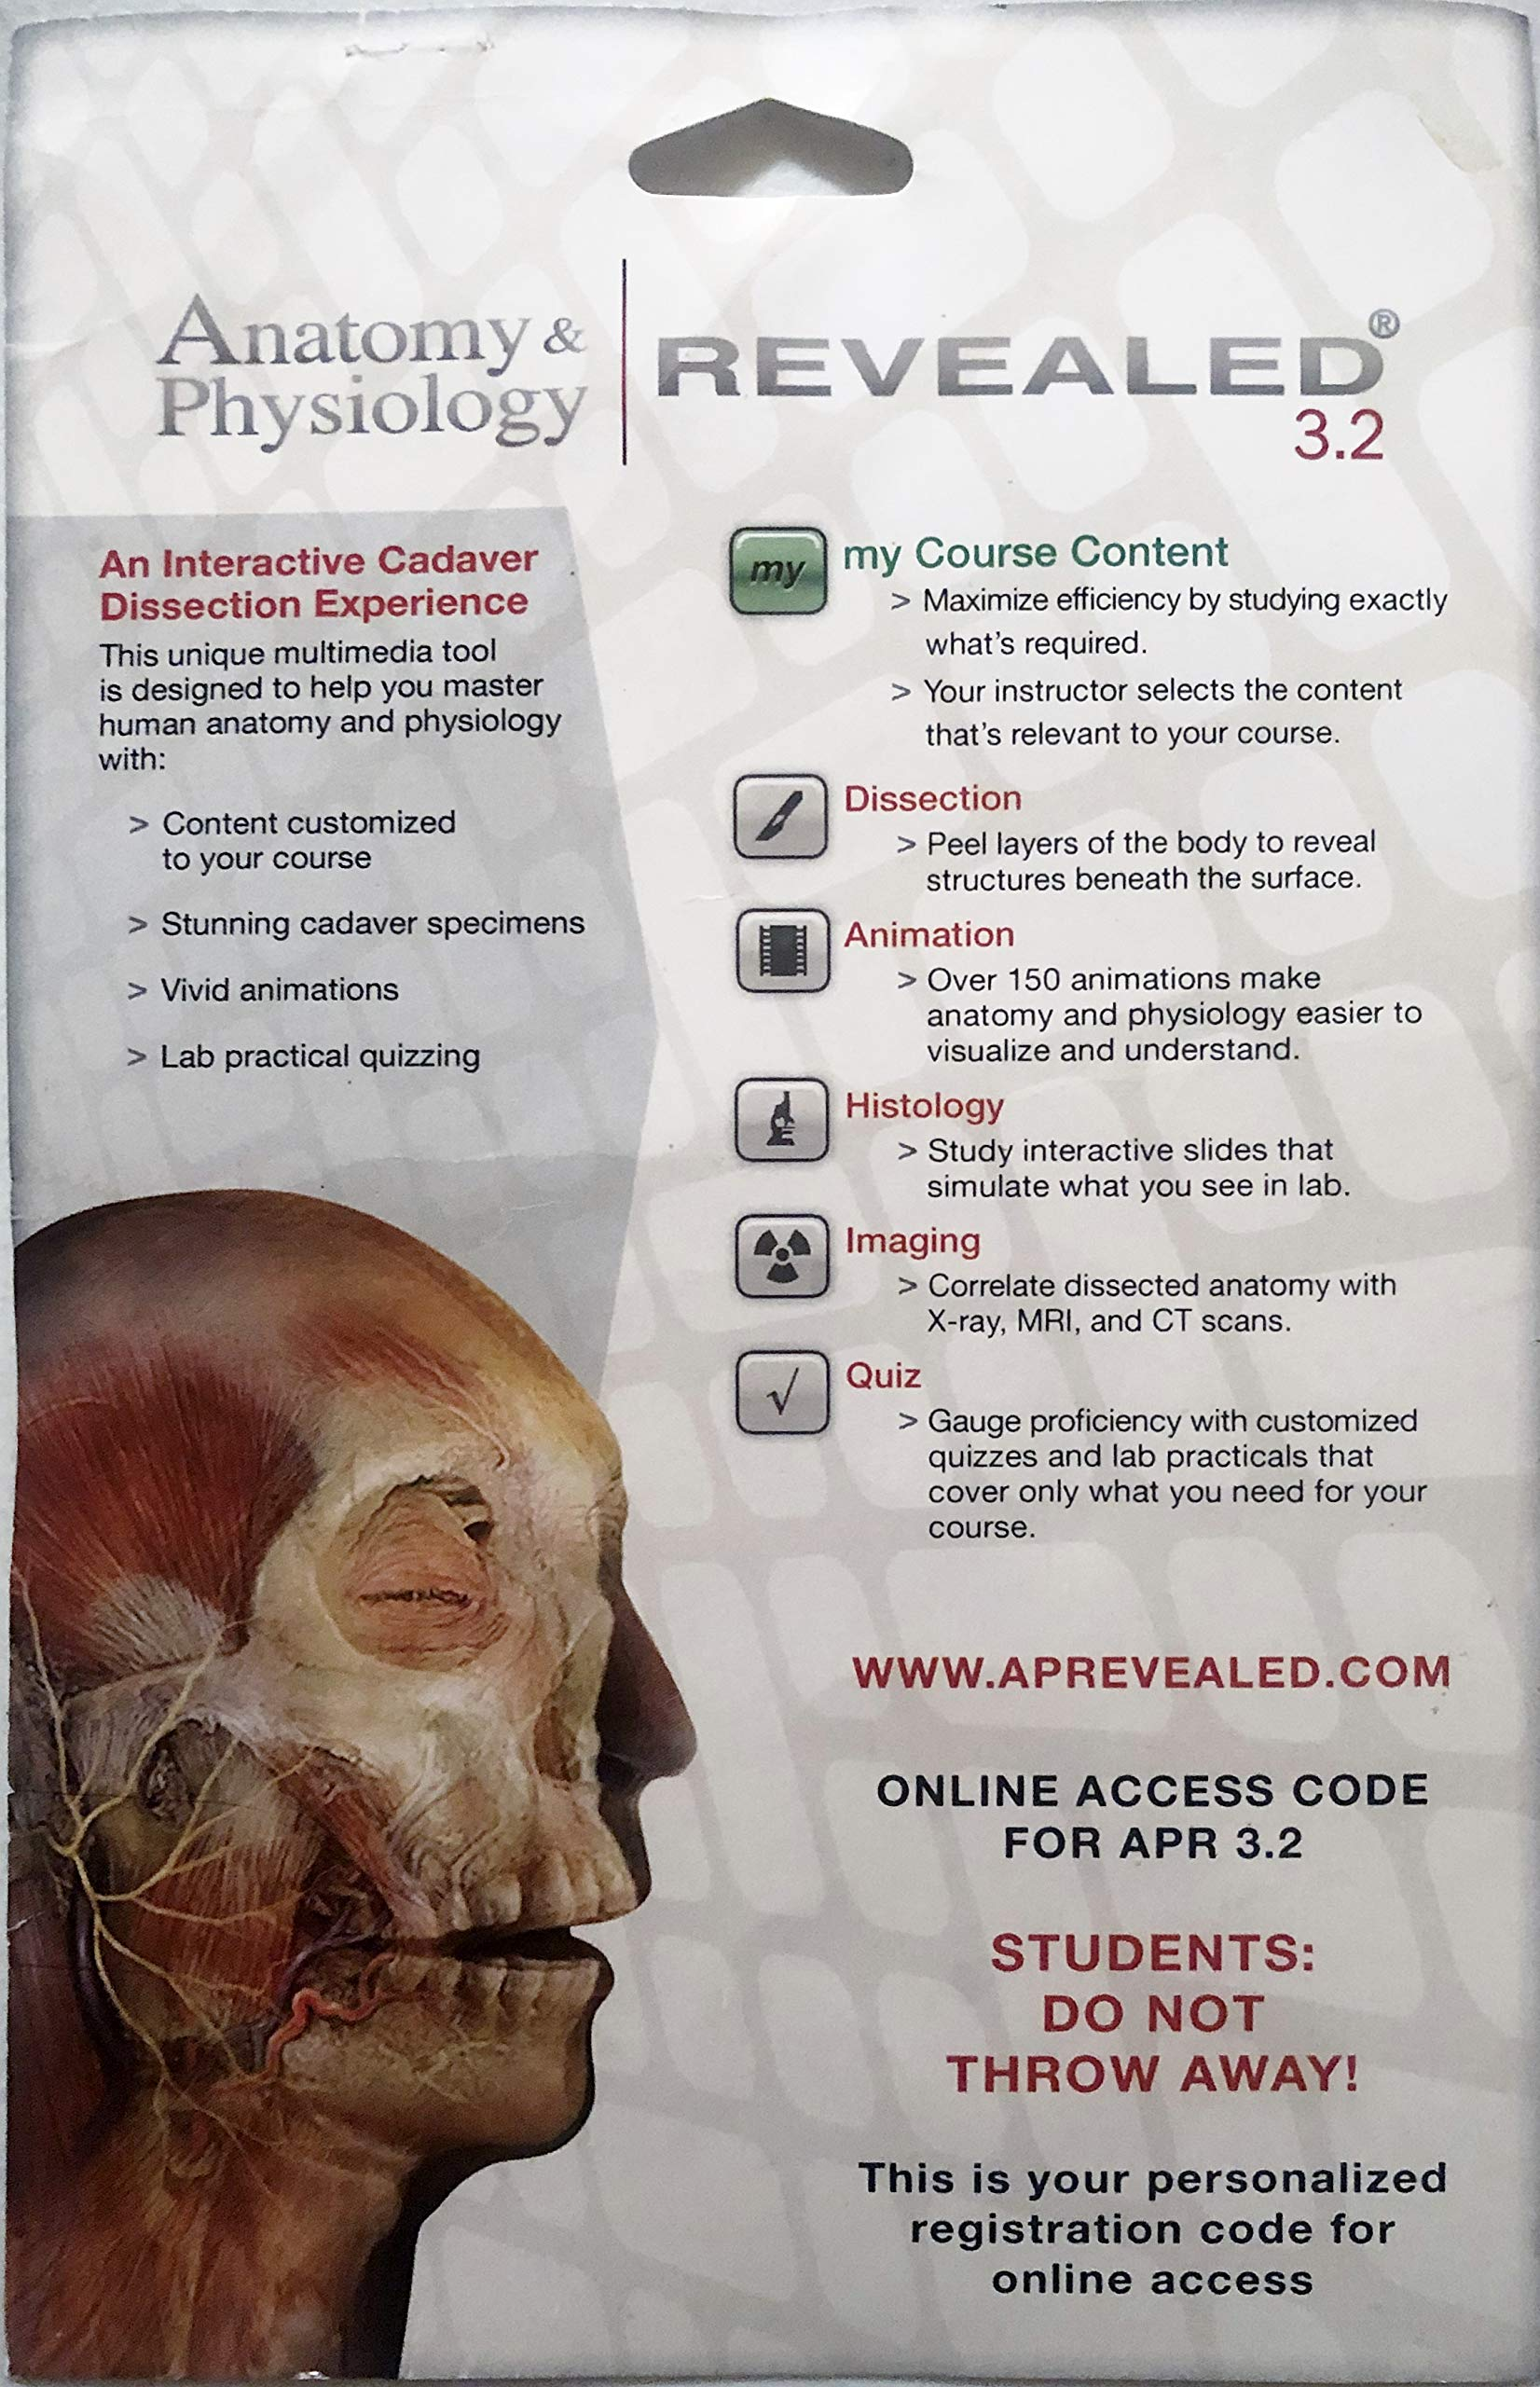 anatomy and physiology revealed 3.0 free registration code